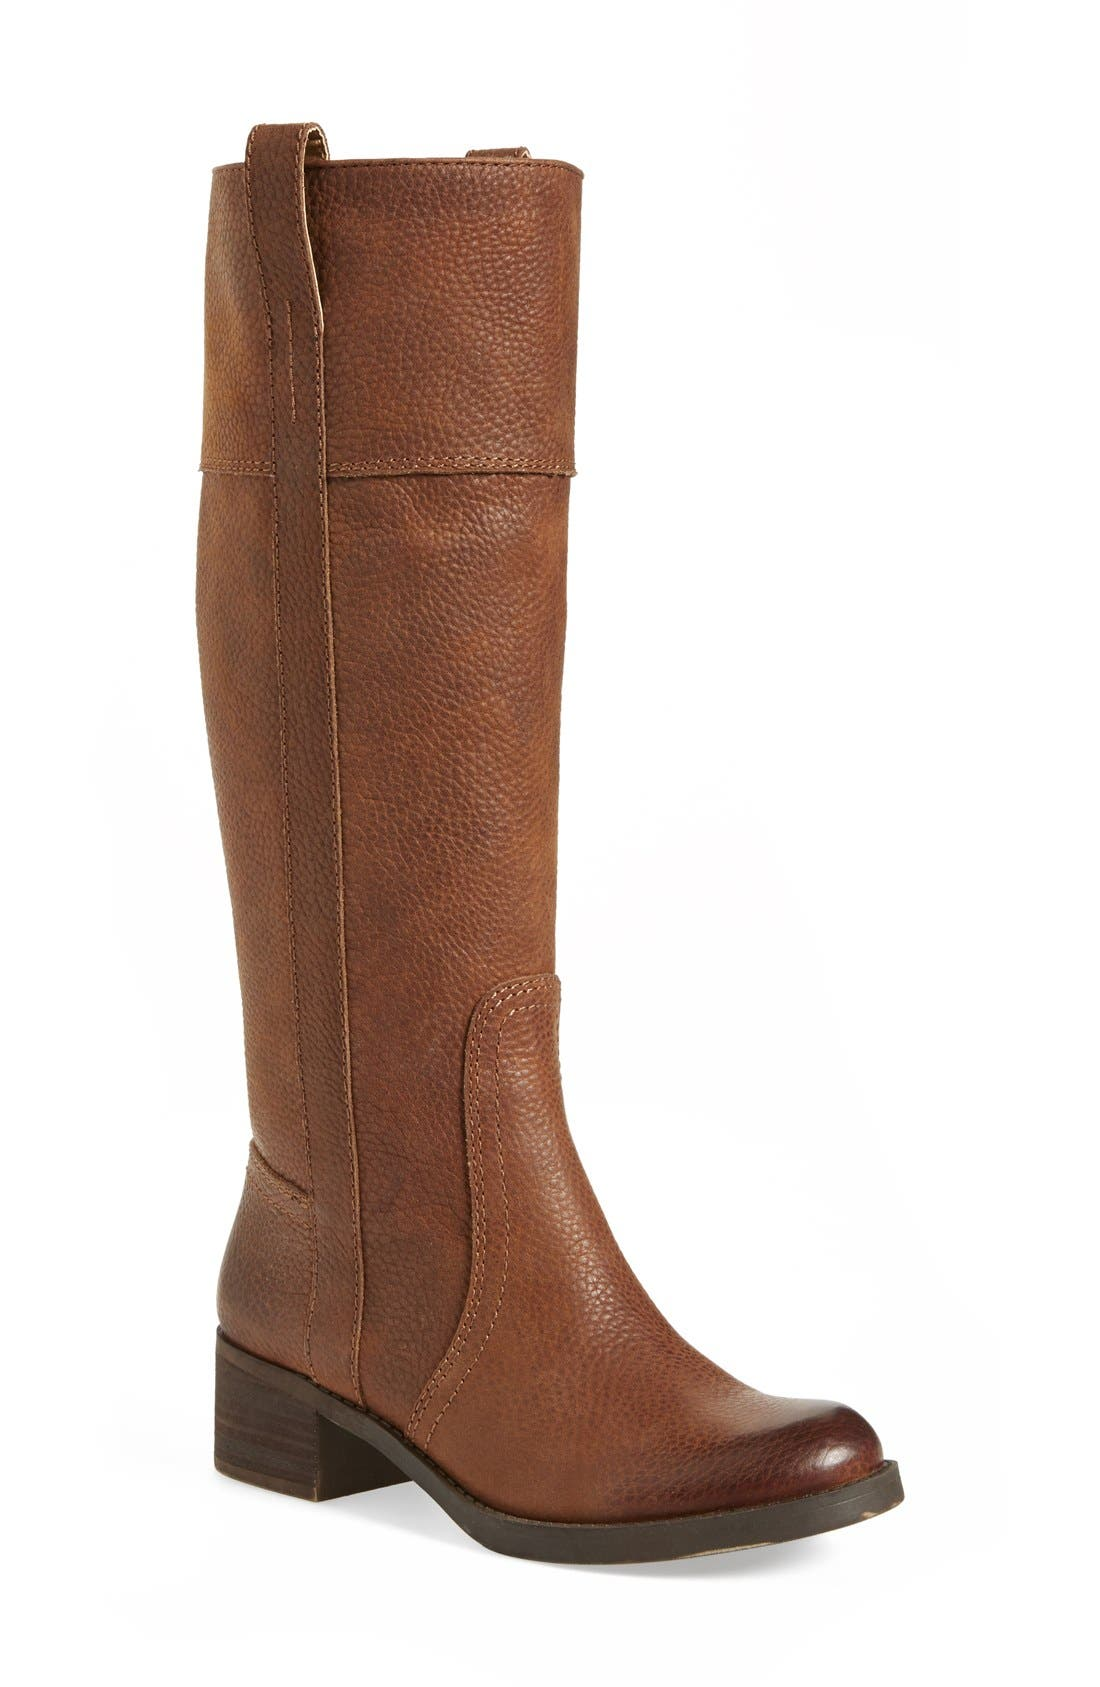 Main Image - Lucky Brand 'Heloisse' Boot (Women)